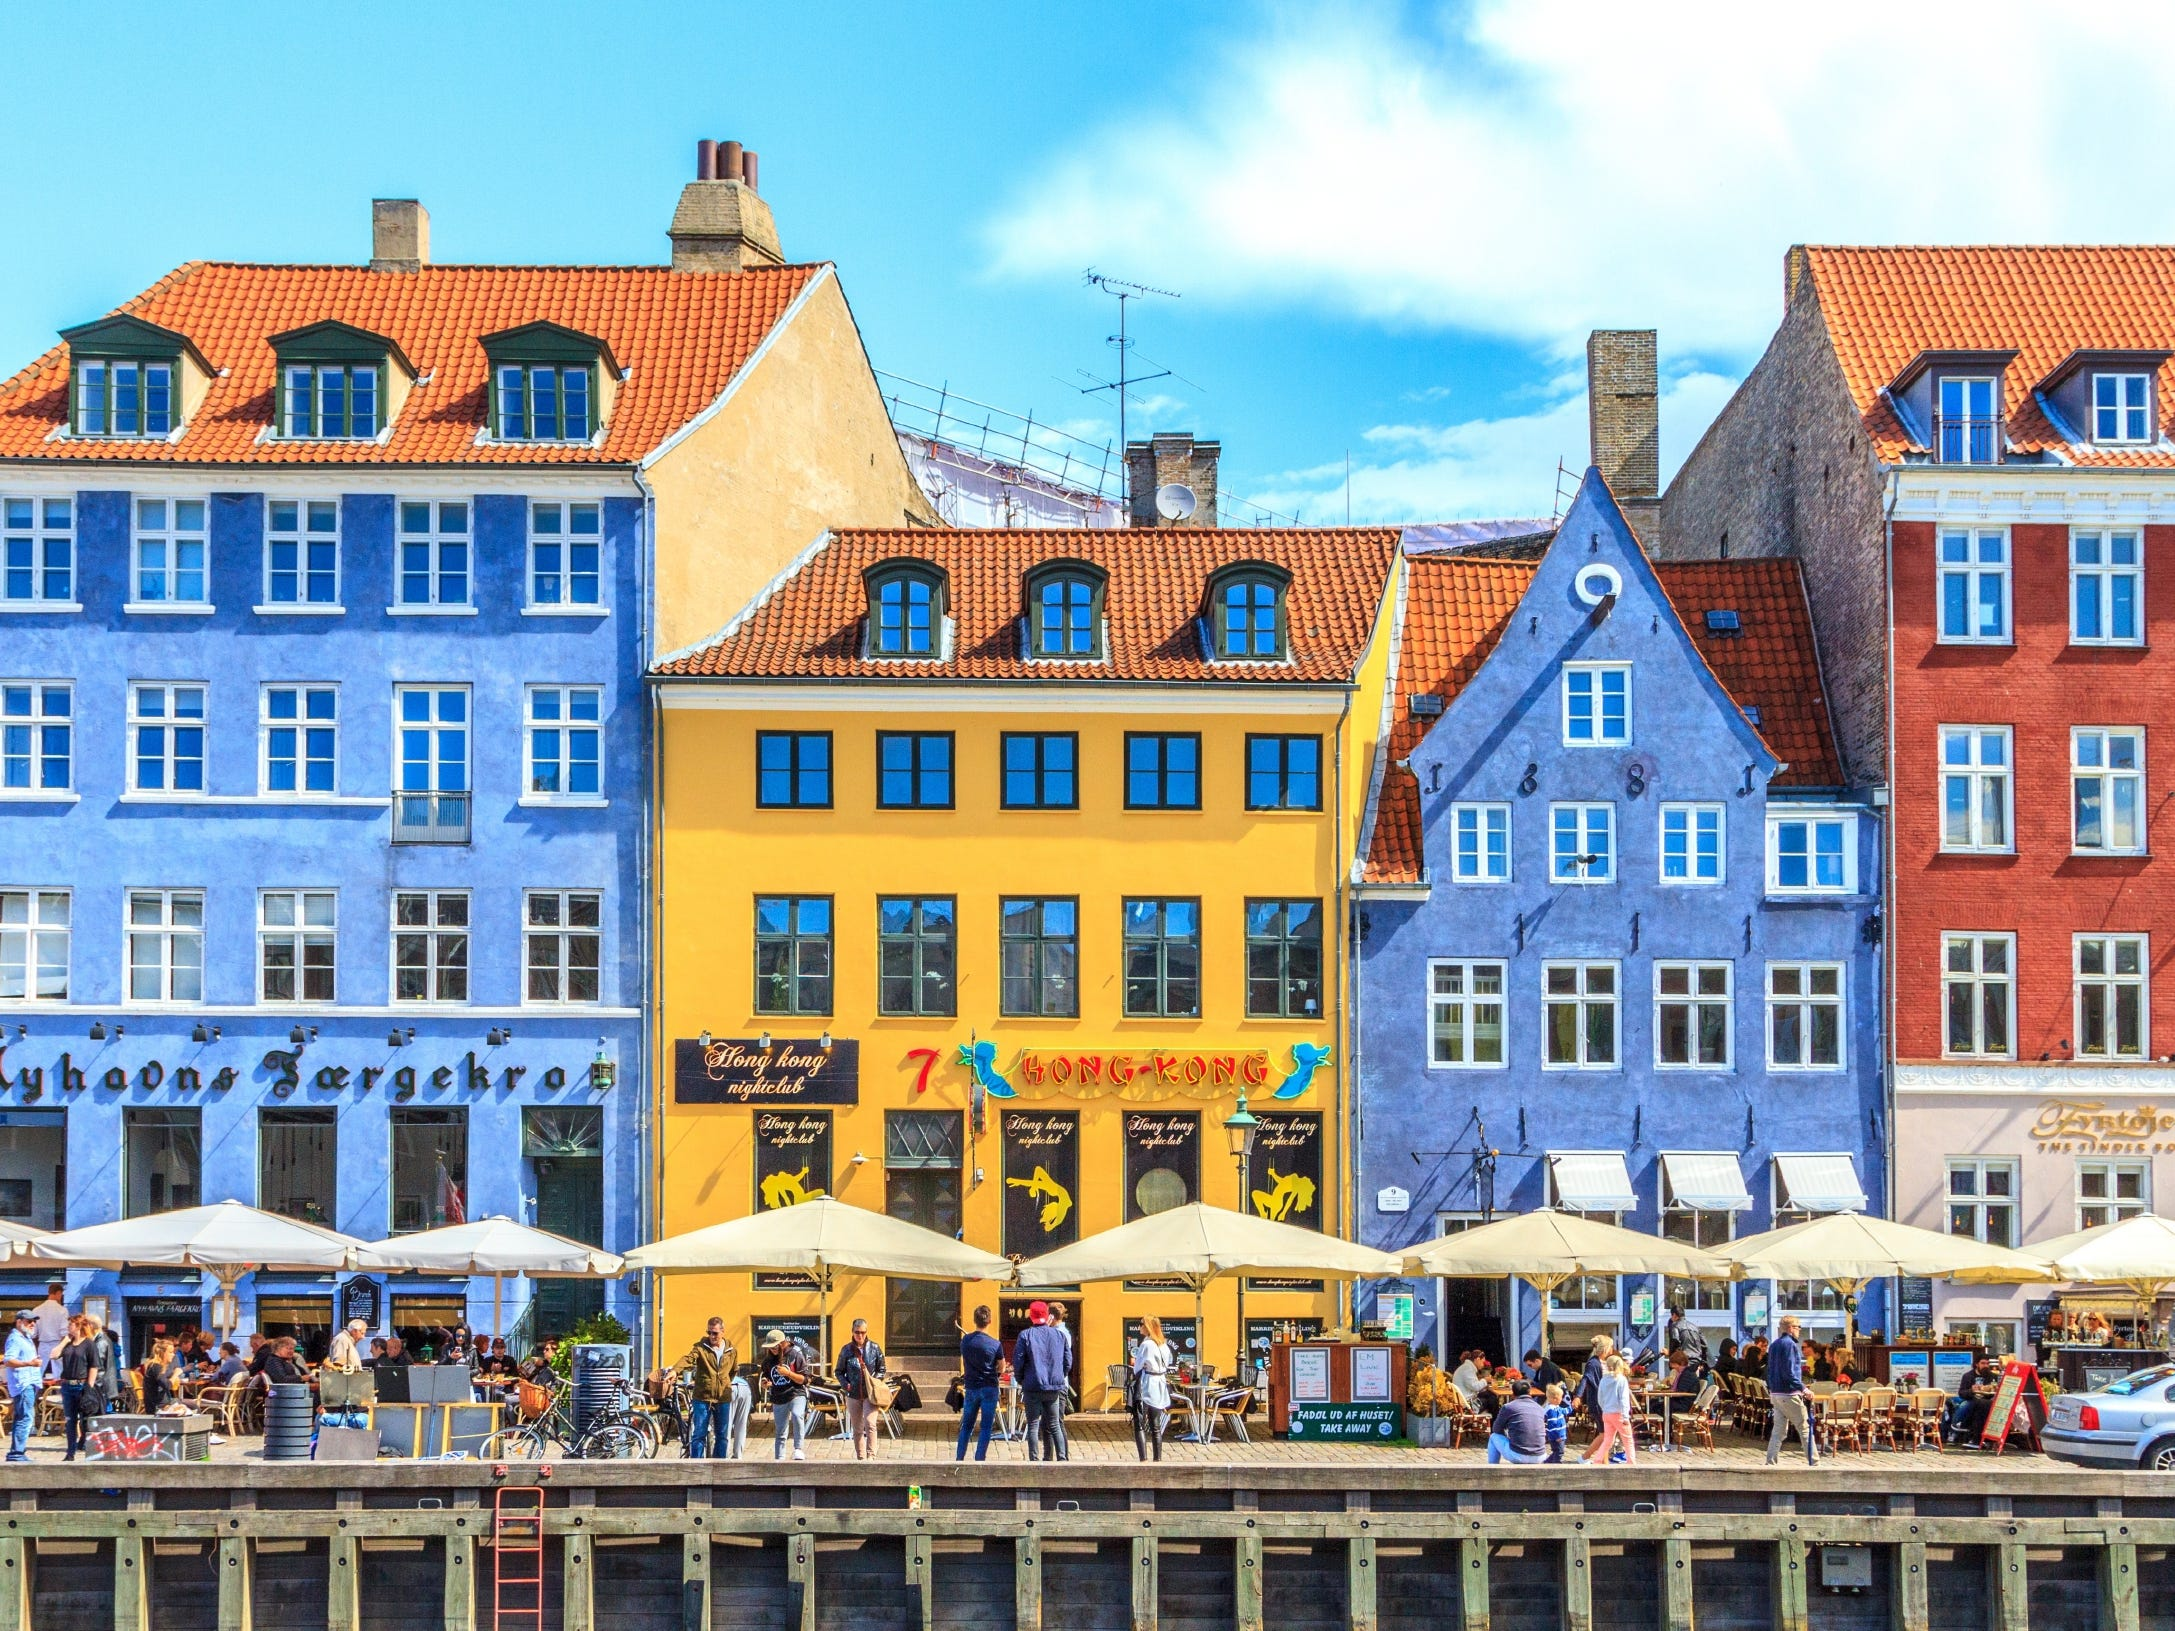 Top 10 cities to visit in 2019 from Copenhagen to Mexico City, according to Lonely Planet